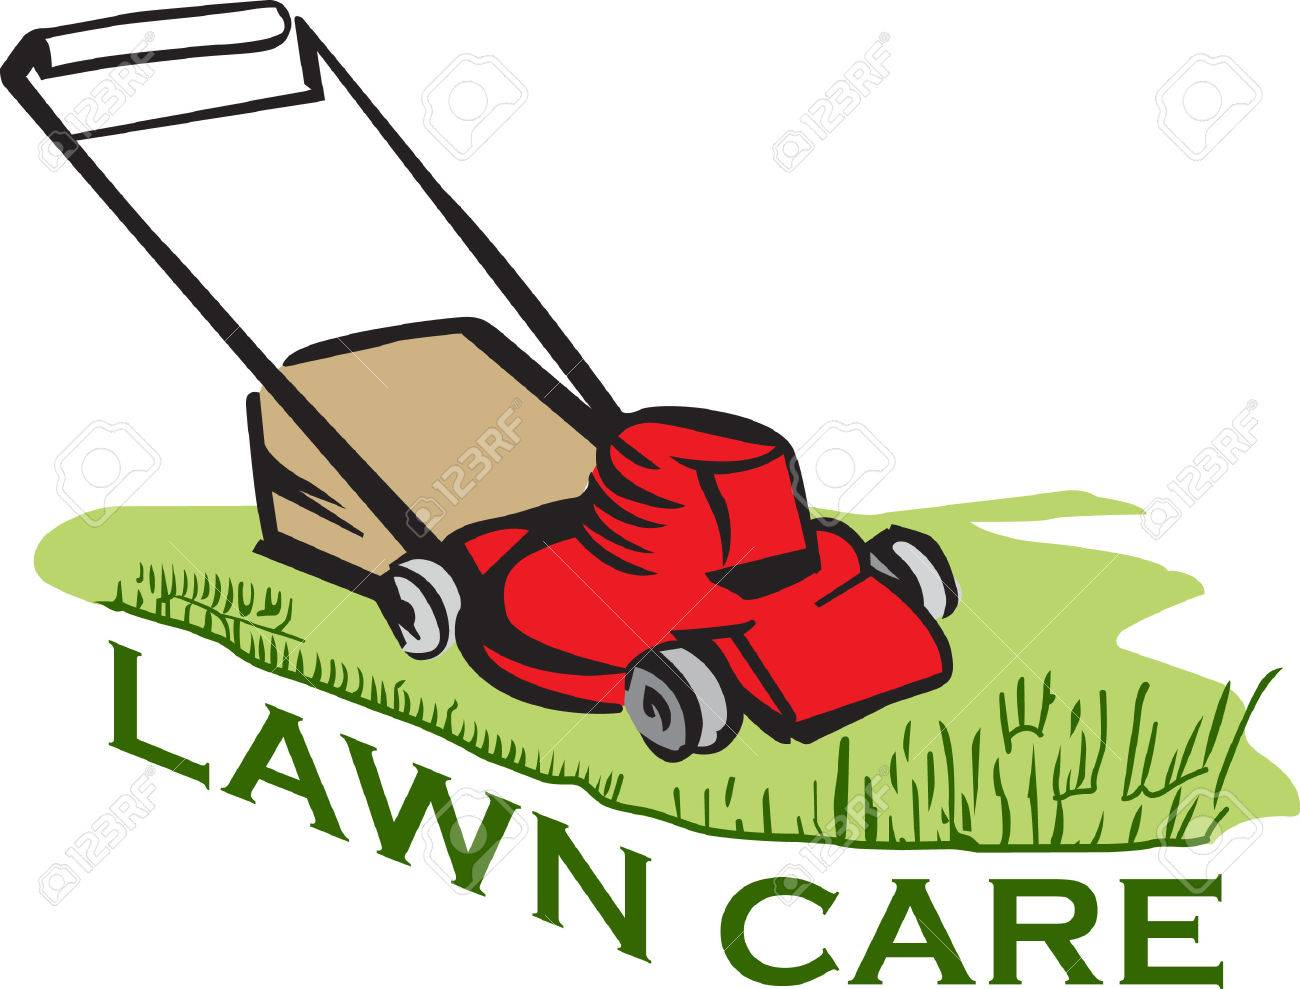 its the perfect advertisement for your lawn mowing business royalty rh 123rf com free lawn mower clipart images free lawn mower clipart download